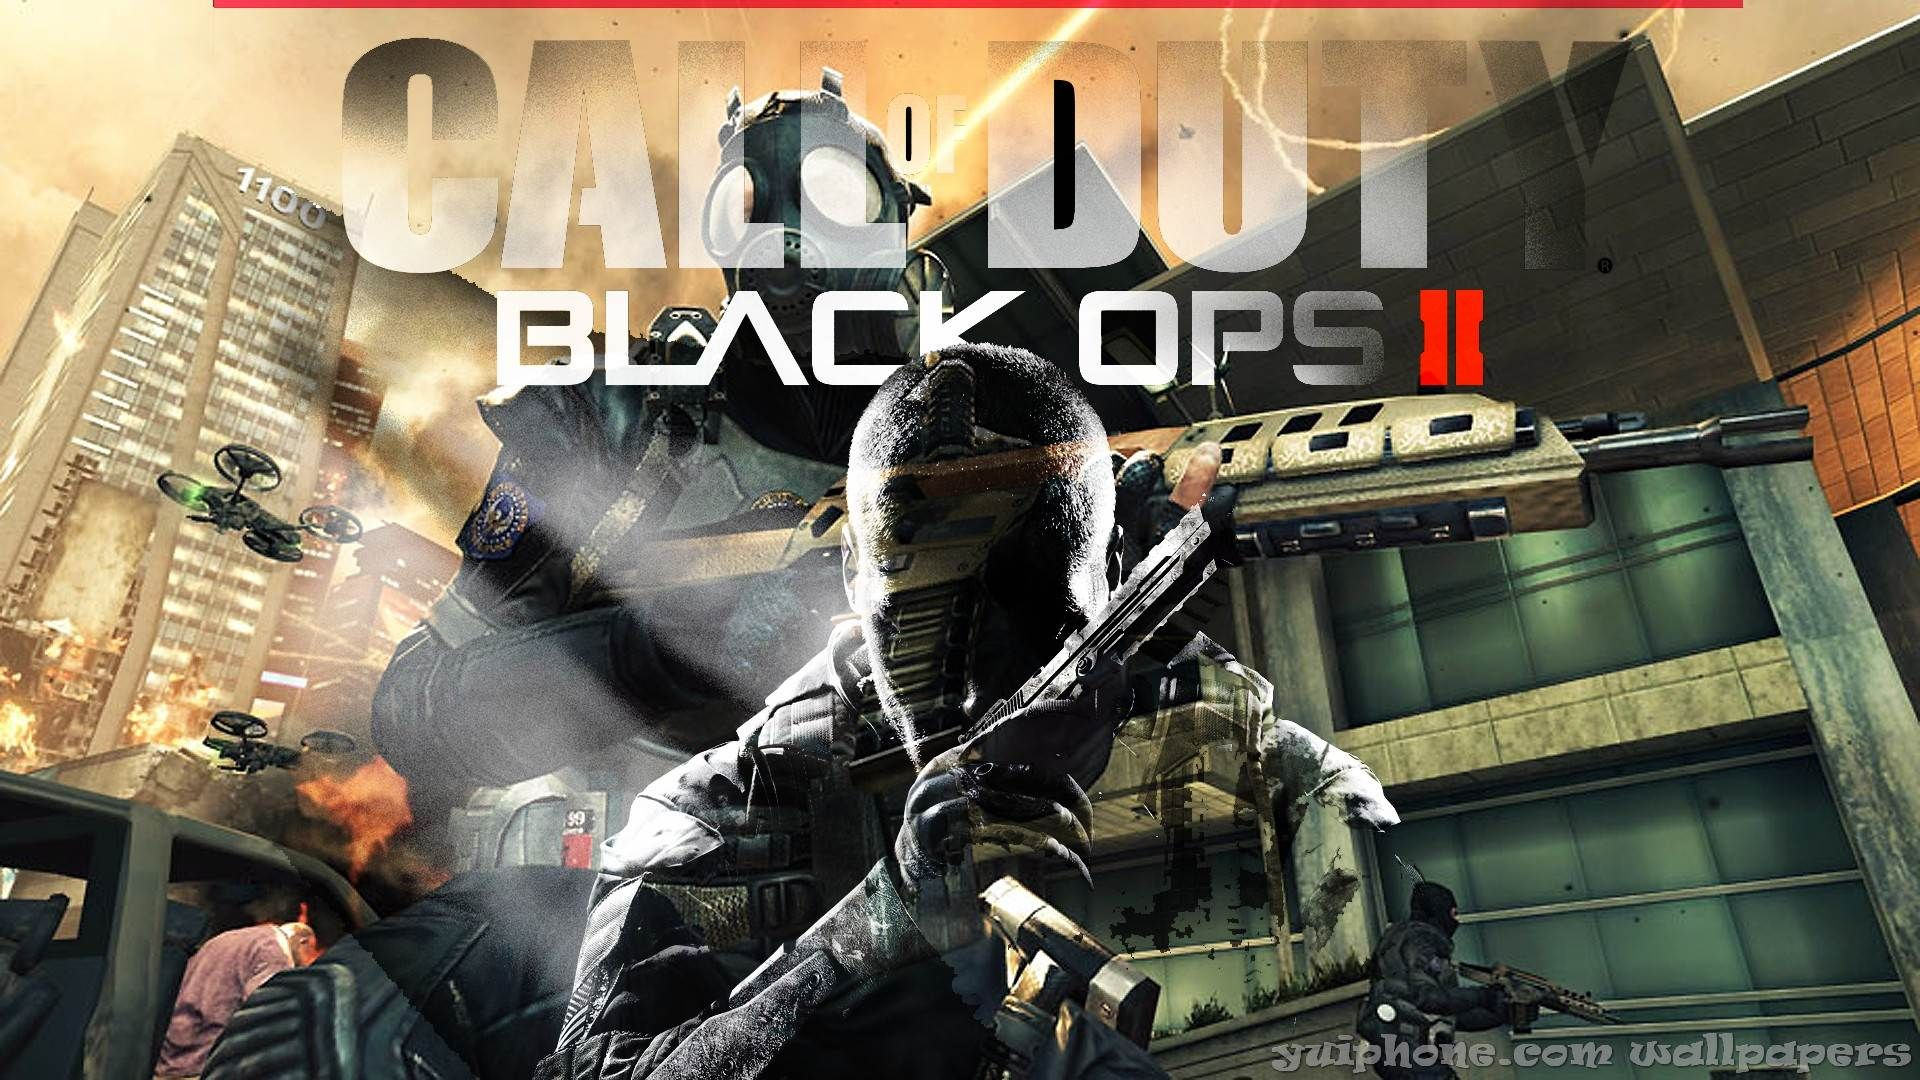 Beautiful Bo Zombies Wallpaper Teorg 1600x1071 Call Of Duty Wallpapers Black Ops